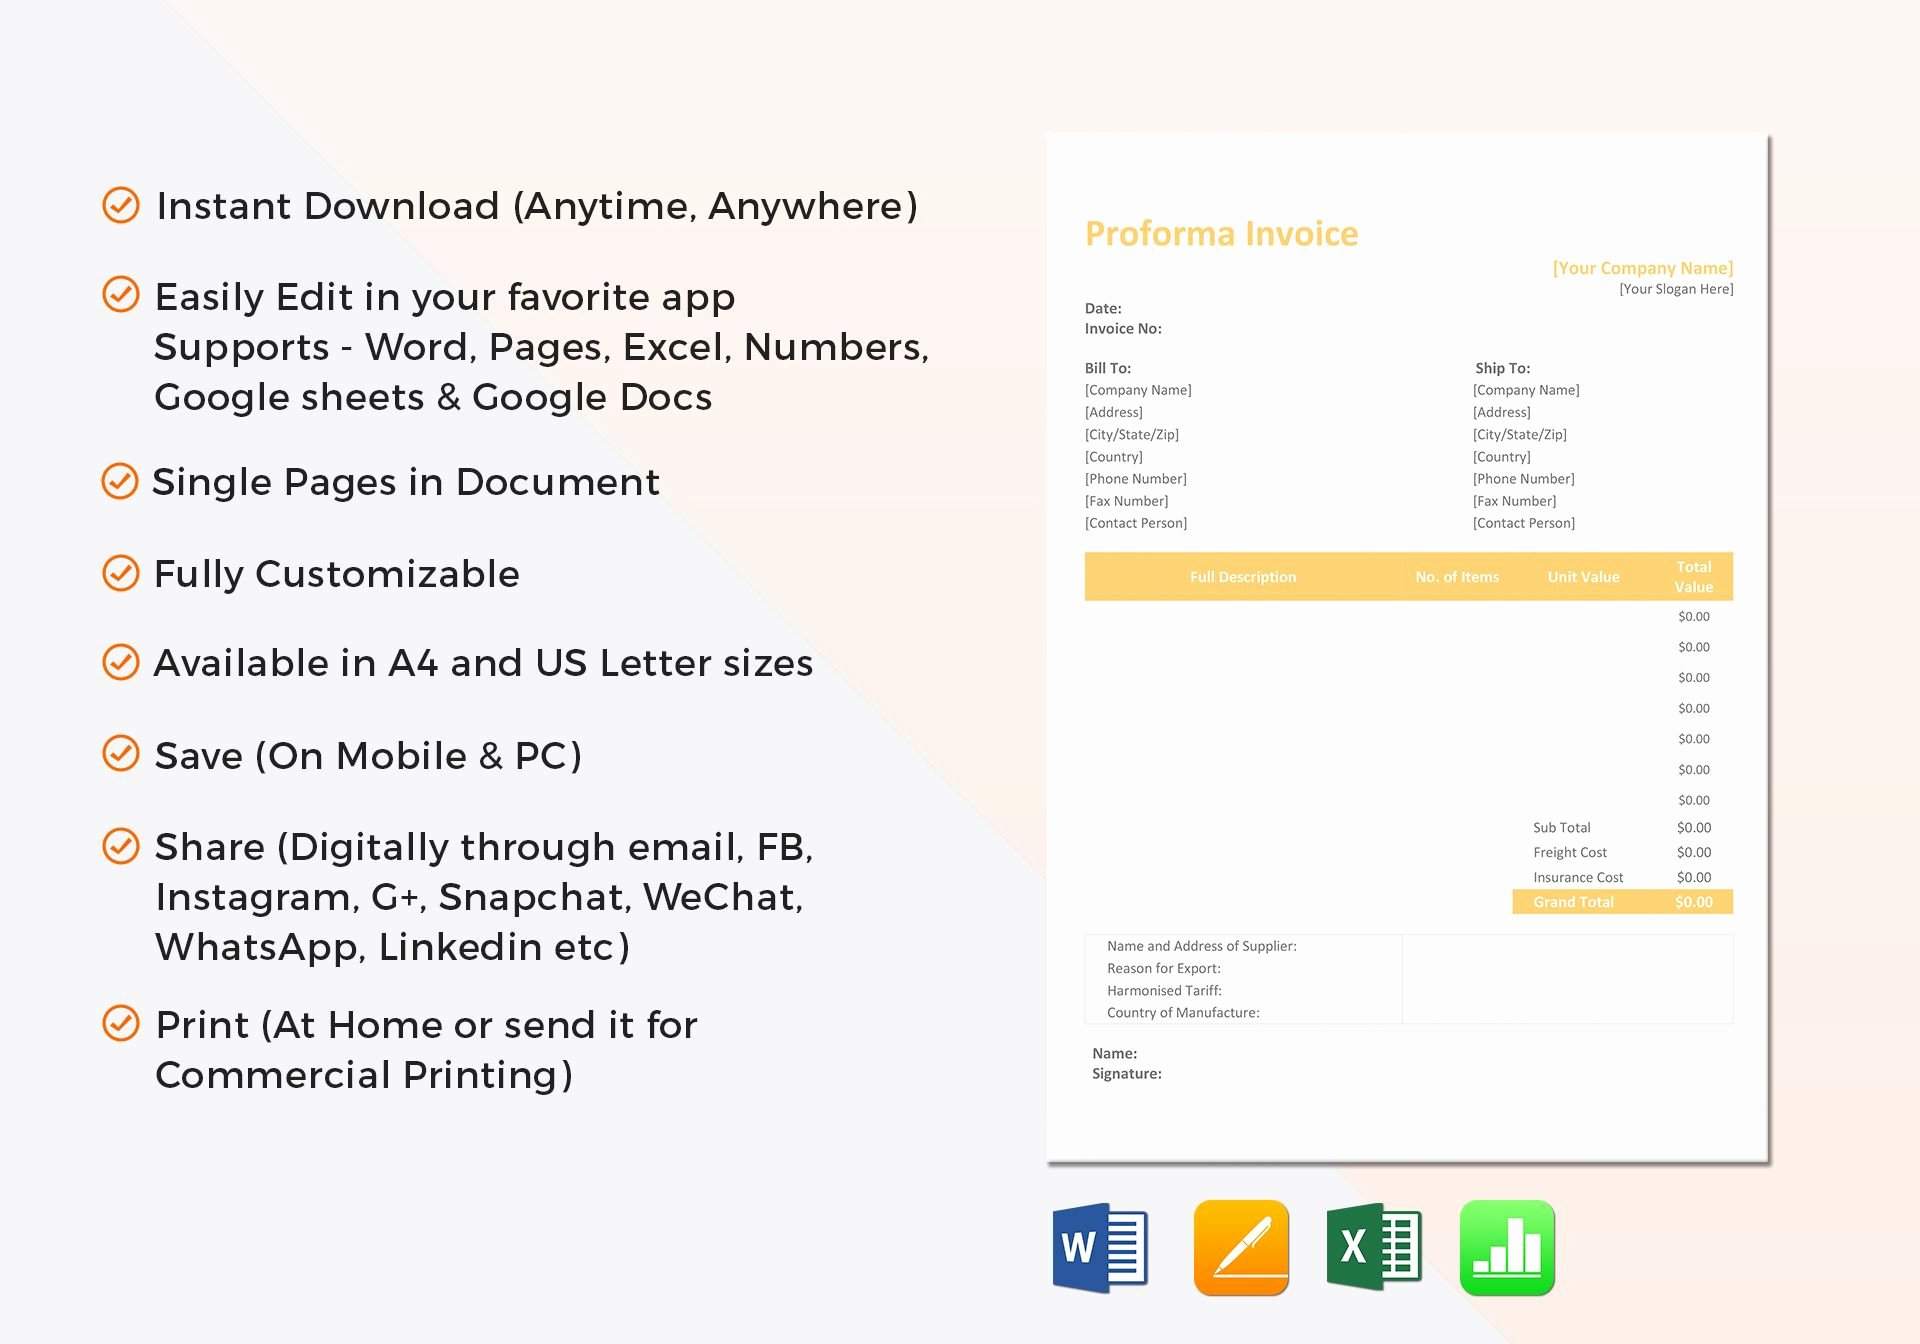 Proforma Invoice Template Excel Awesome Proforma Invoice Template In Word Excel Apple Pages Numbers